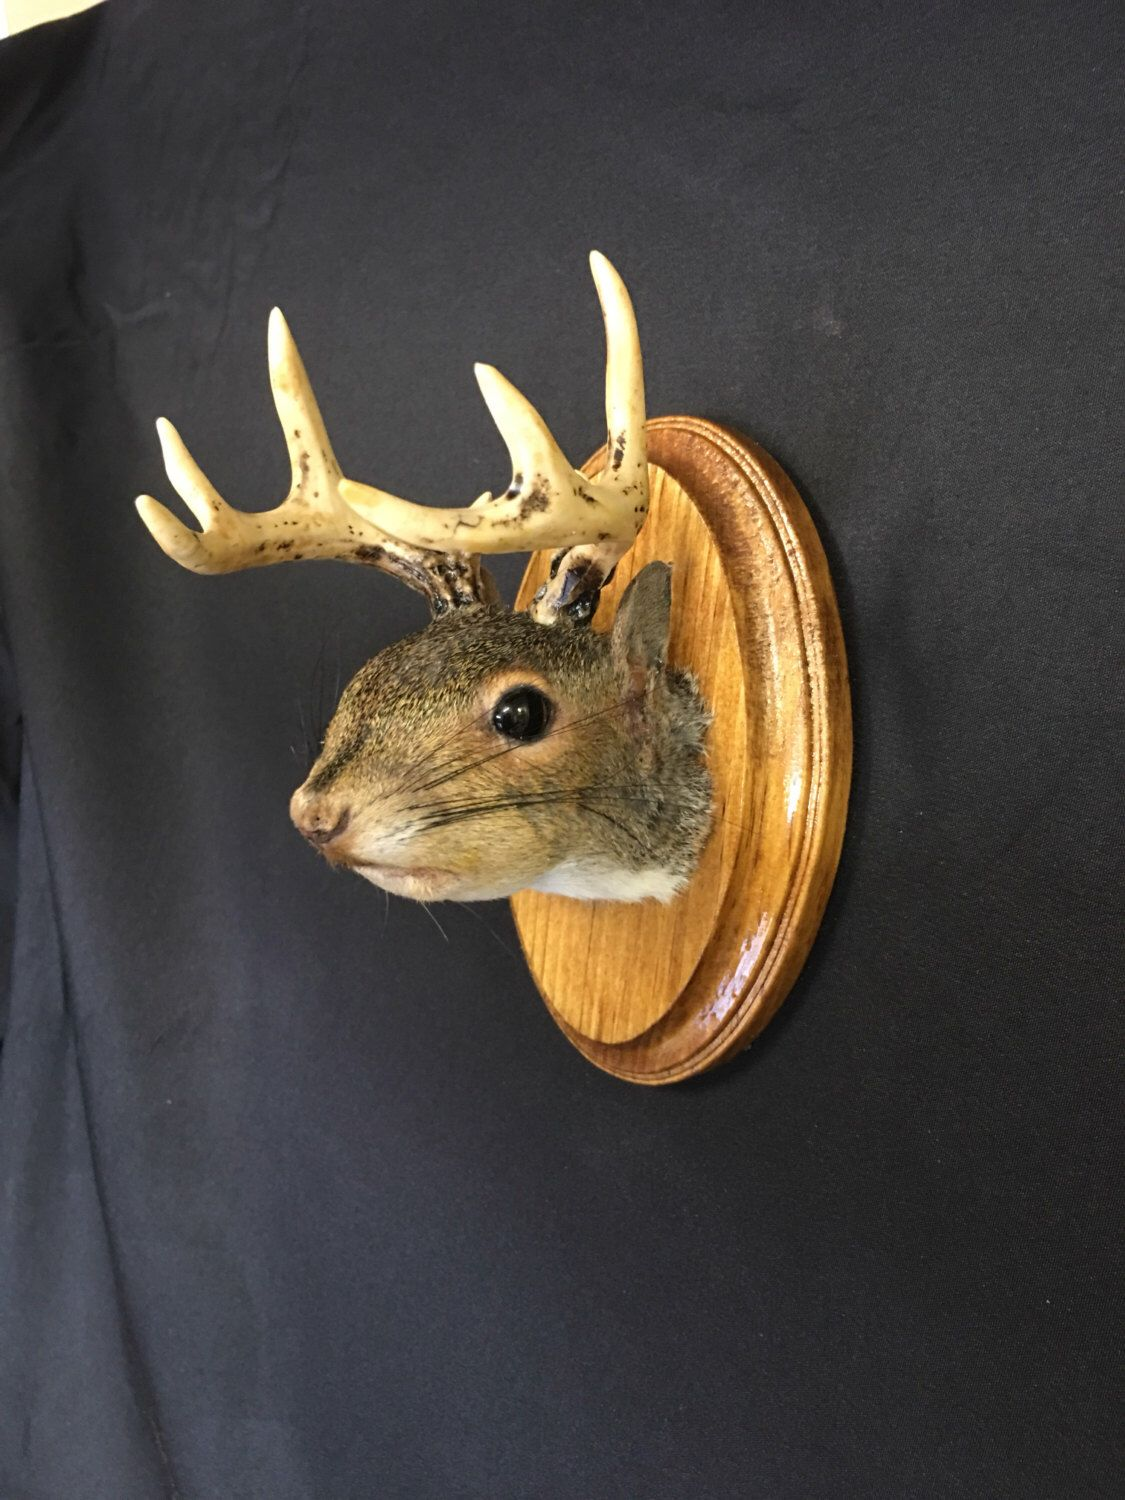 Pin by Stephen Harris on Squirrel taxidermy | Taxidermy, Antlers